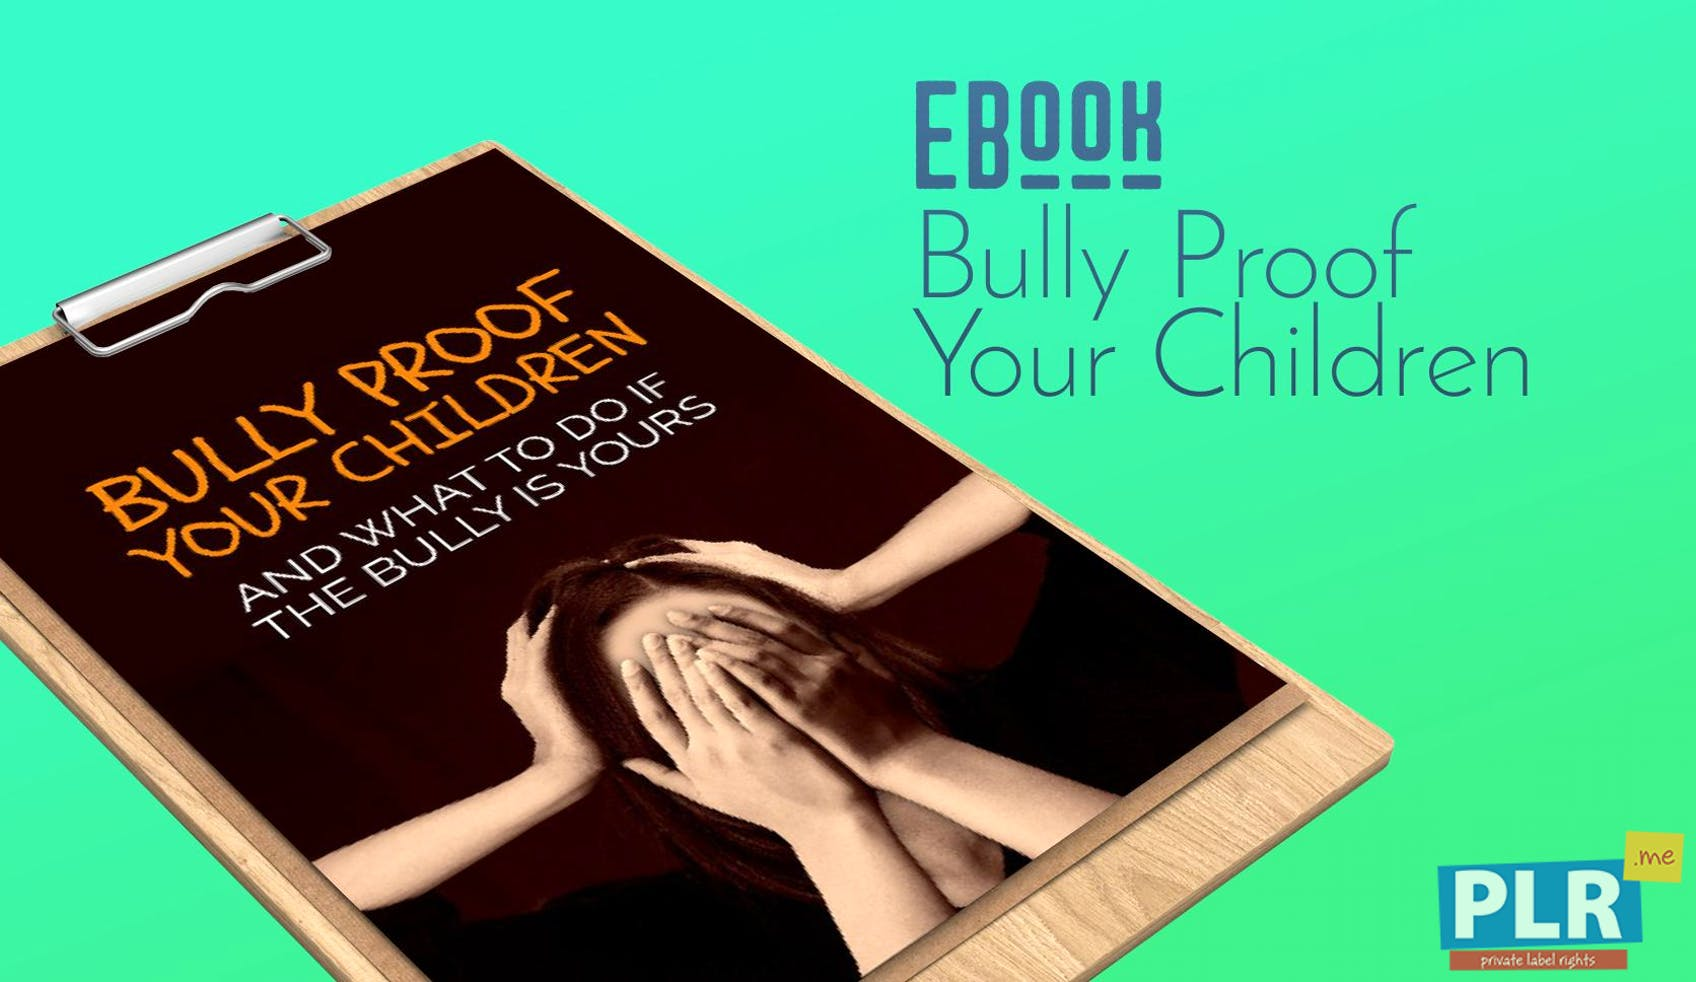 Bully Proof Your Children